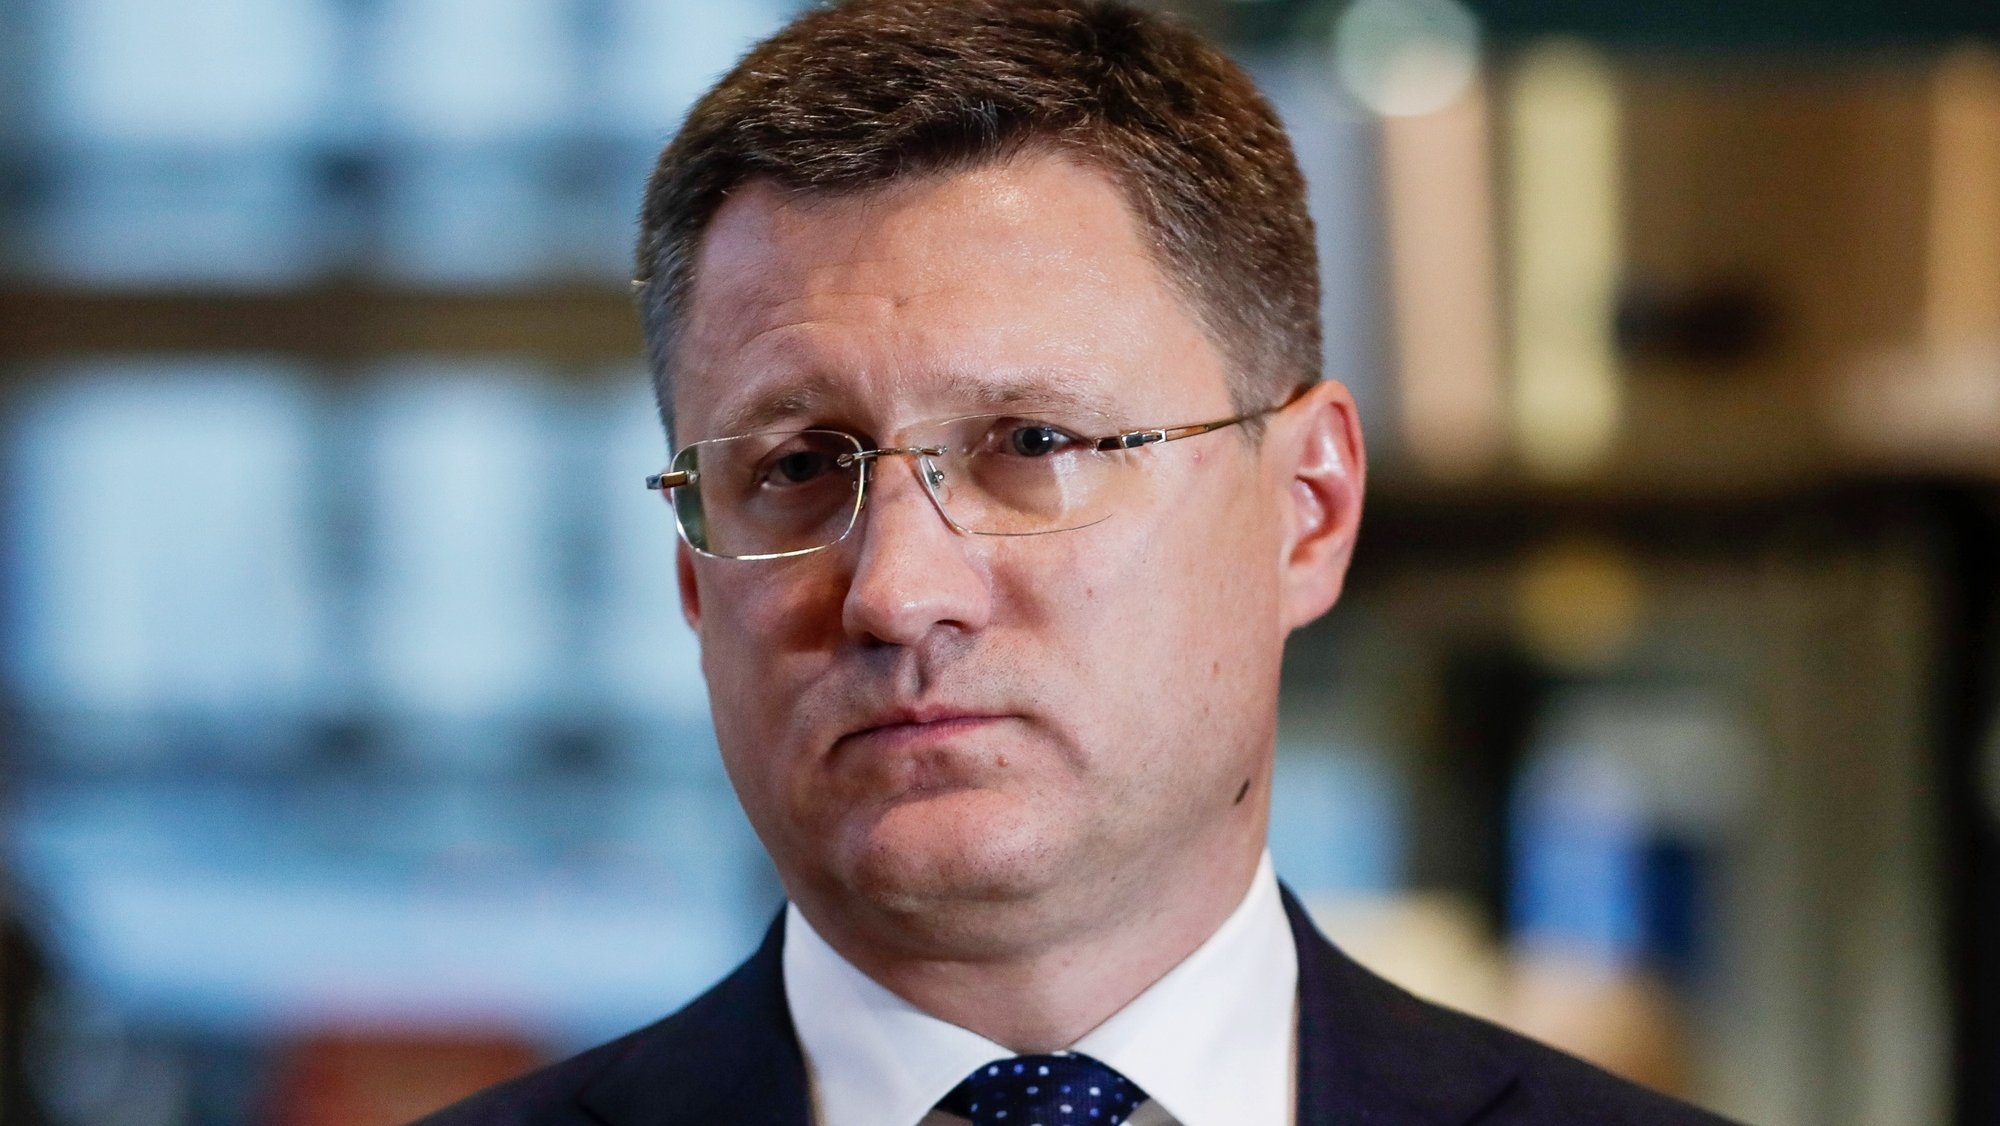 epa07956577 Russian Minister of Energy Alexander Novak speaks to the press after a Trilateral Gas Talks  between the European Union, Russia and Ukraine at the EU Commission headquarters in Brussels, Belgium, 28 October 2019.  EPA/STEPHANIE LECOCQ